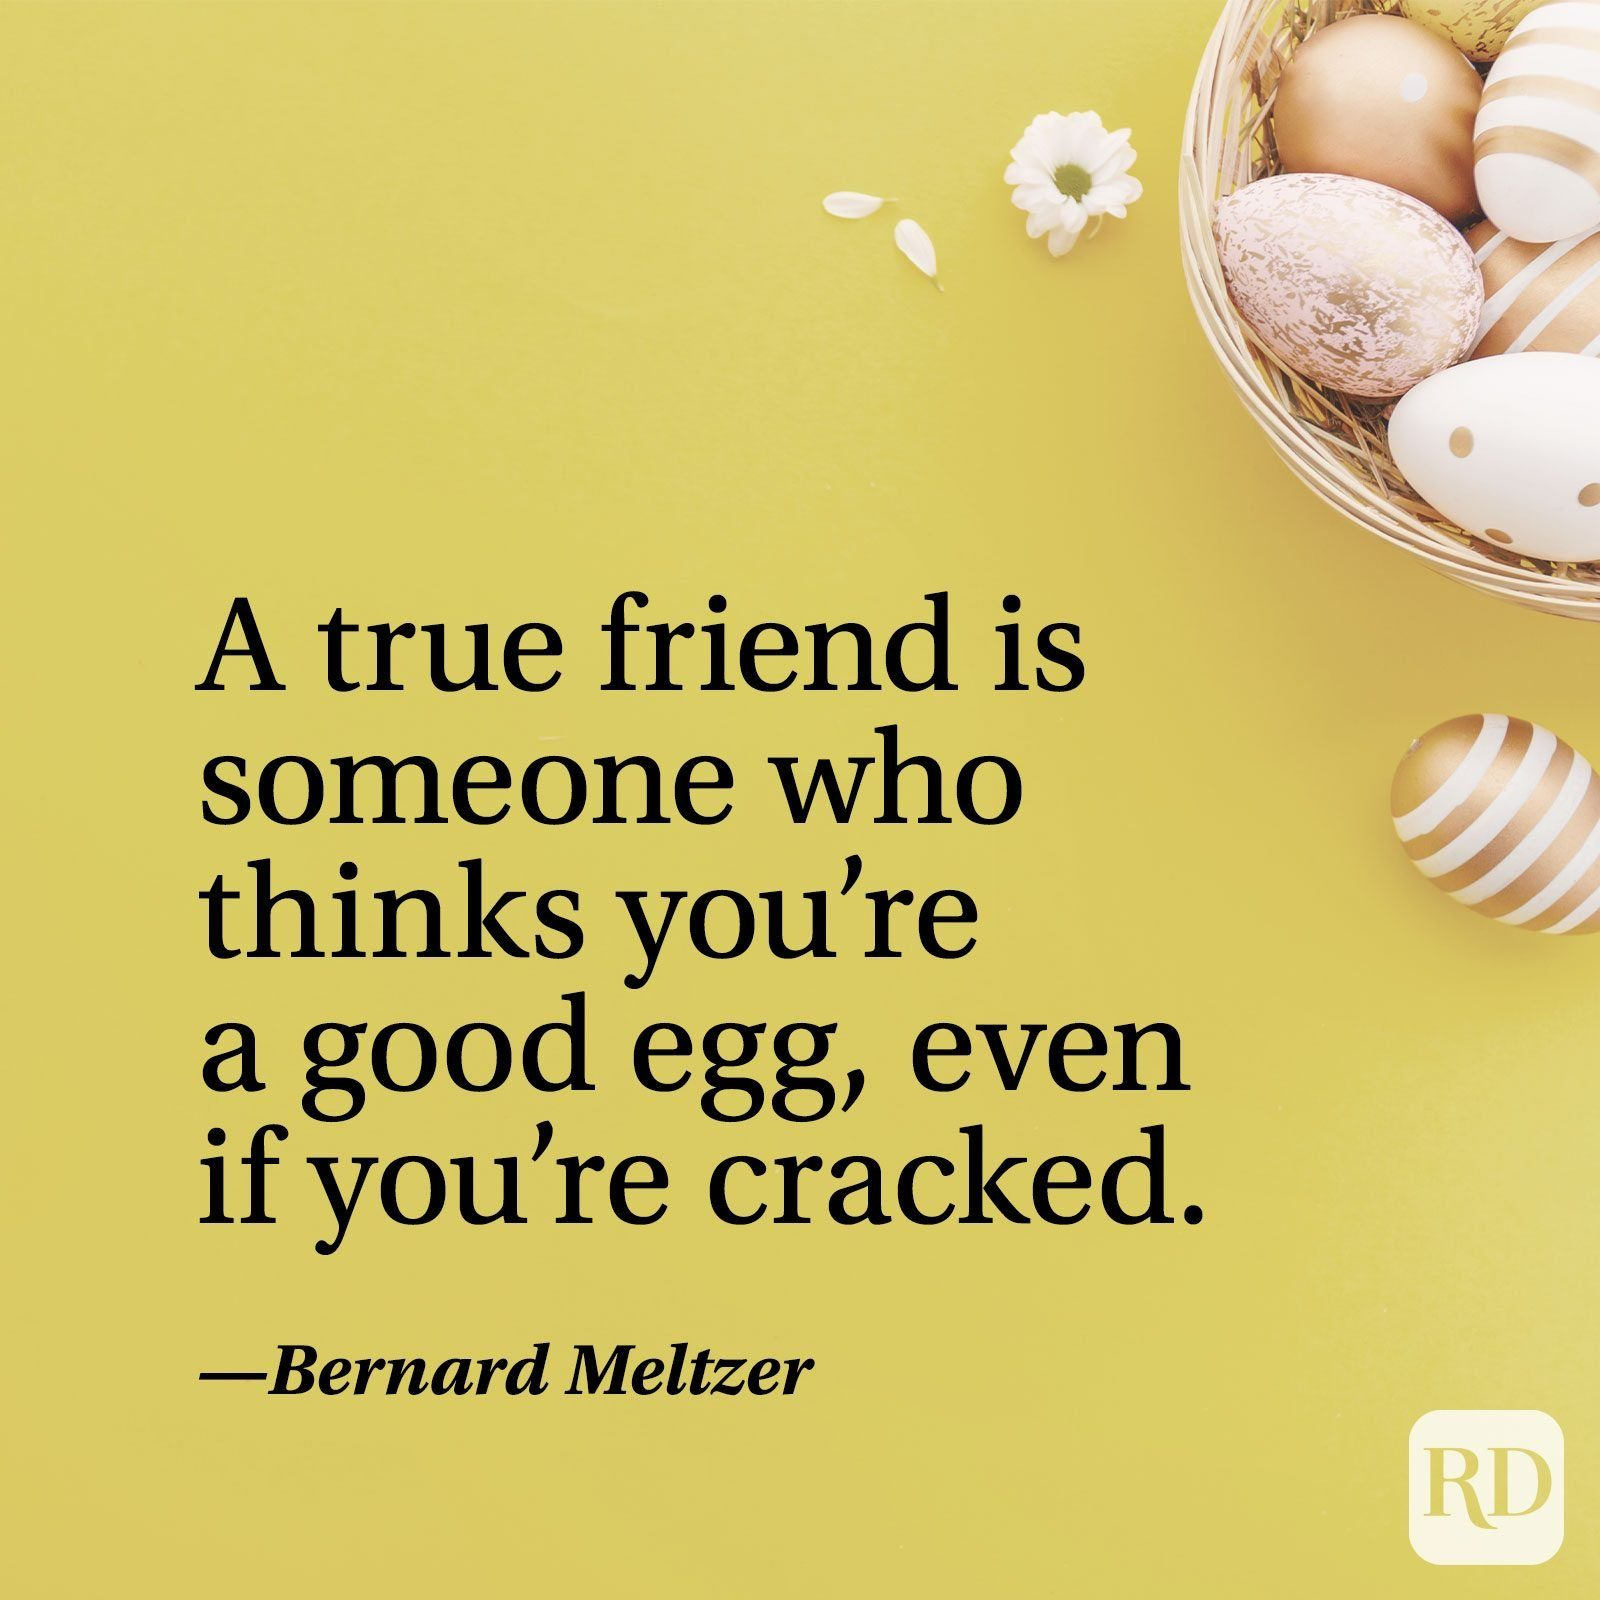 """""""A true friend is someone who thinks you're a good egg, even if you're cracked."""" — Bernard Meltzer"""